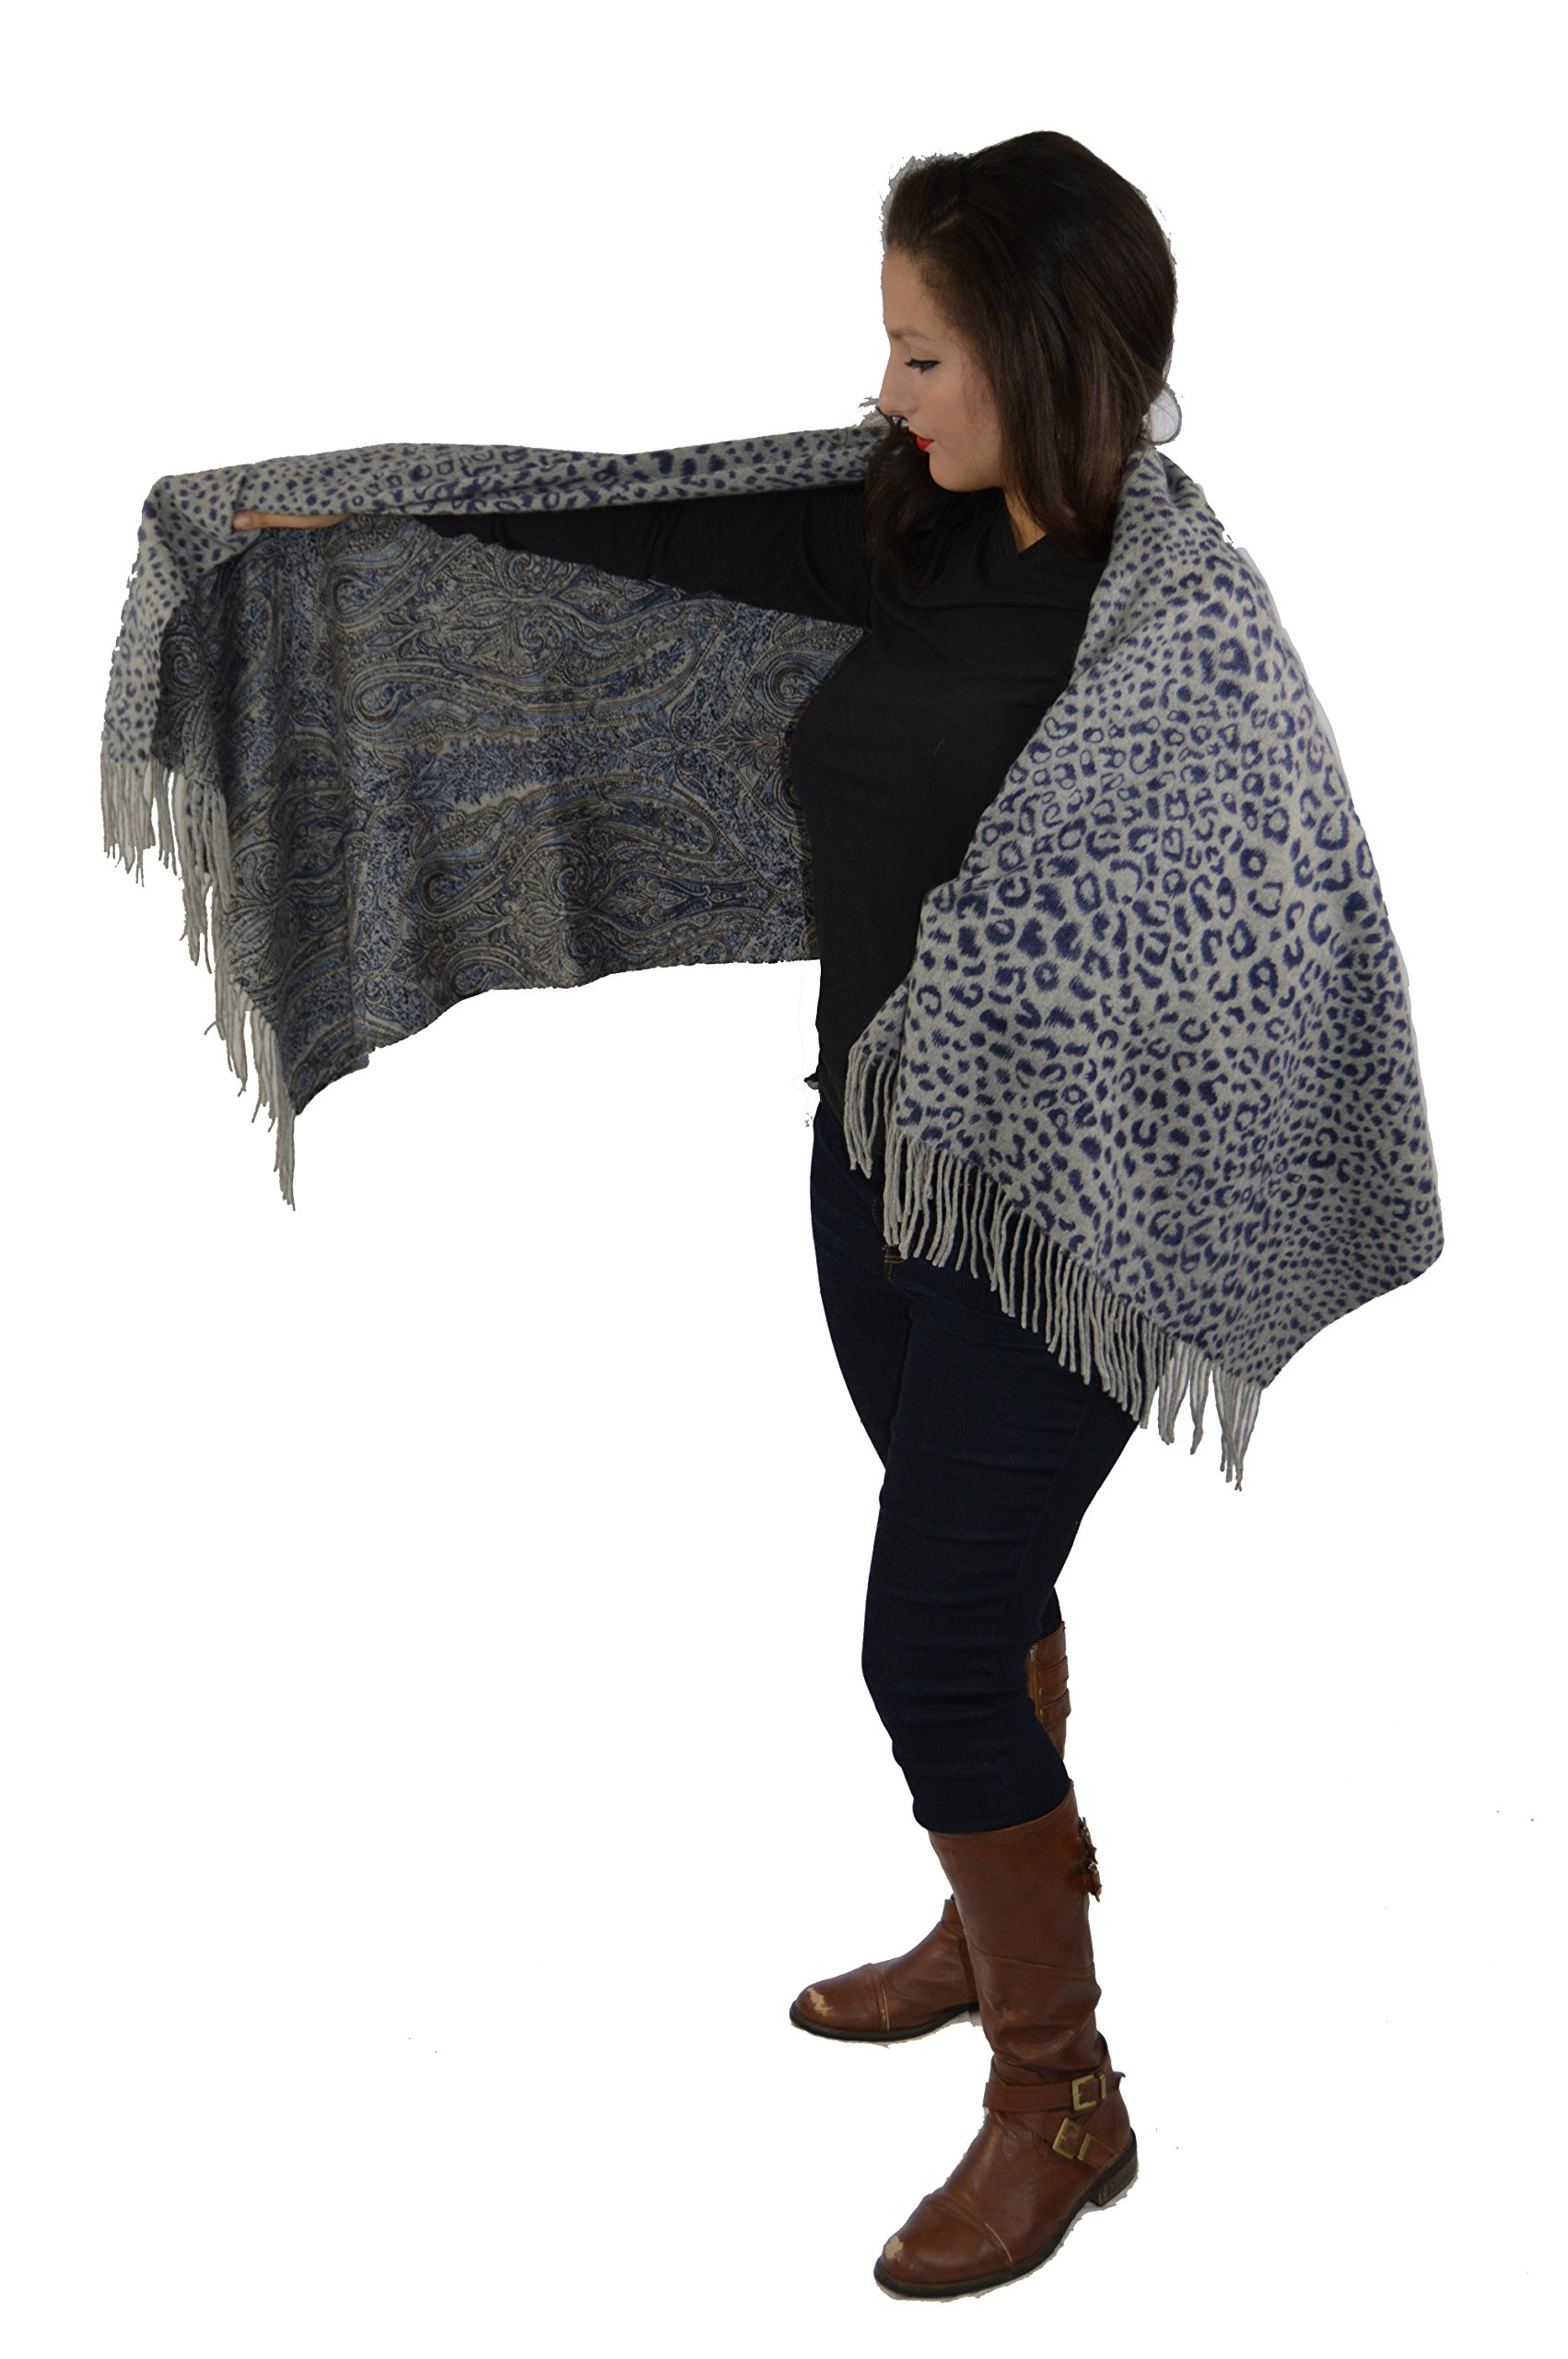 Cashmere Pashmina Group-Cashmere Shawl Scarf Wrap Stole (Solid/ Reversible Print w/ Genuine Fur) -Gray